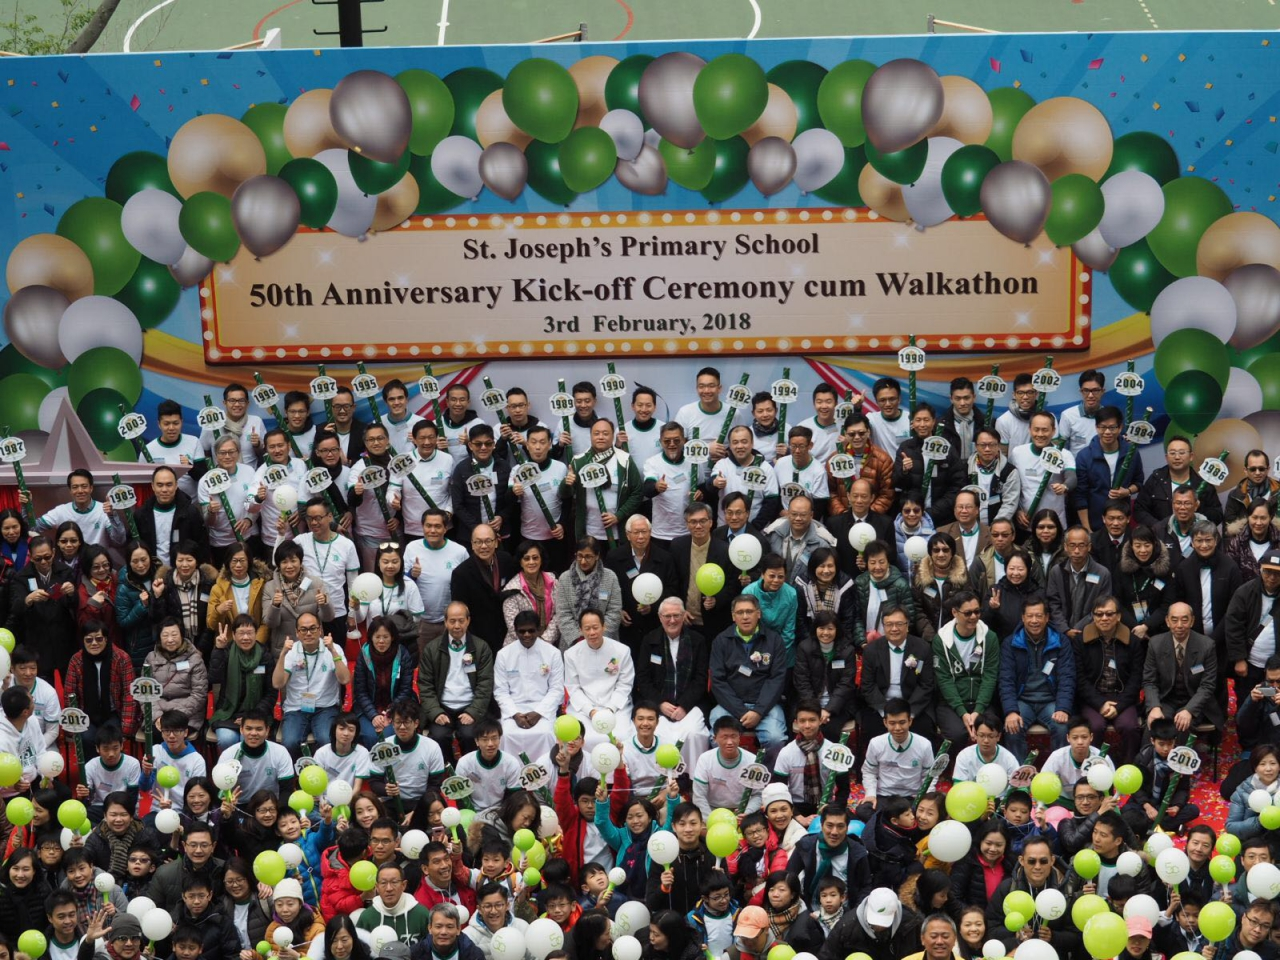 2018-2-3 Golden Jubilee Kick-off Ceremony cum Walkathon